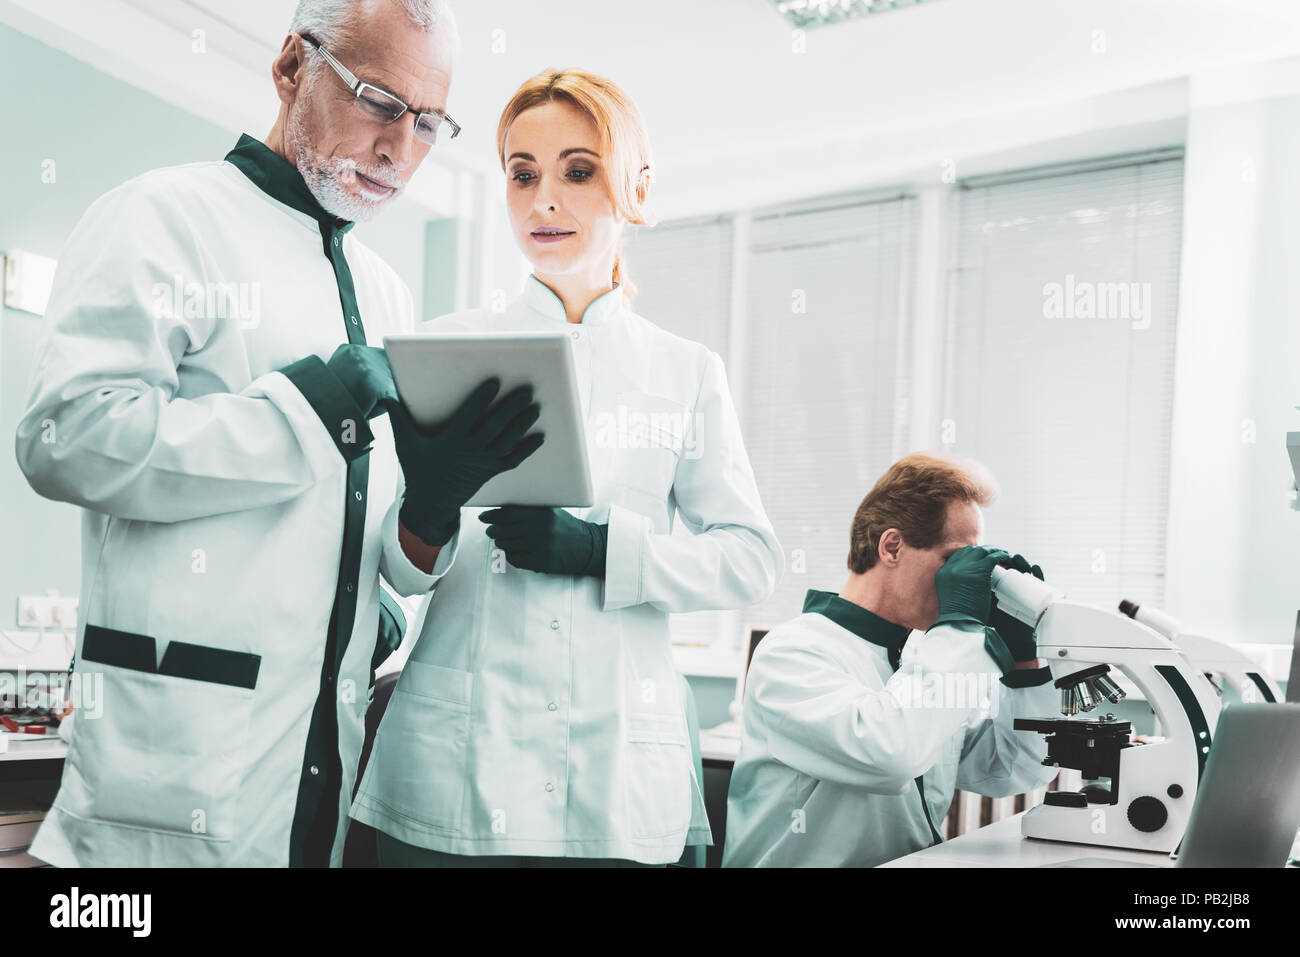 Two chemists standing near researcher using microscope Stock Photo